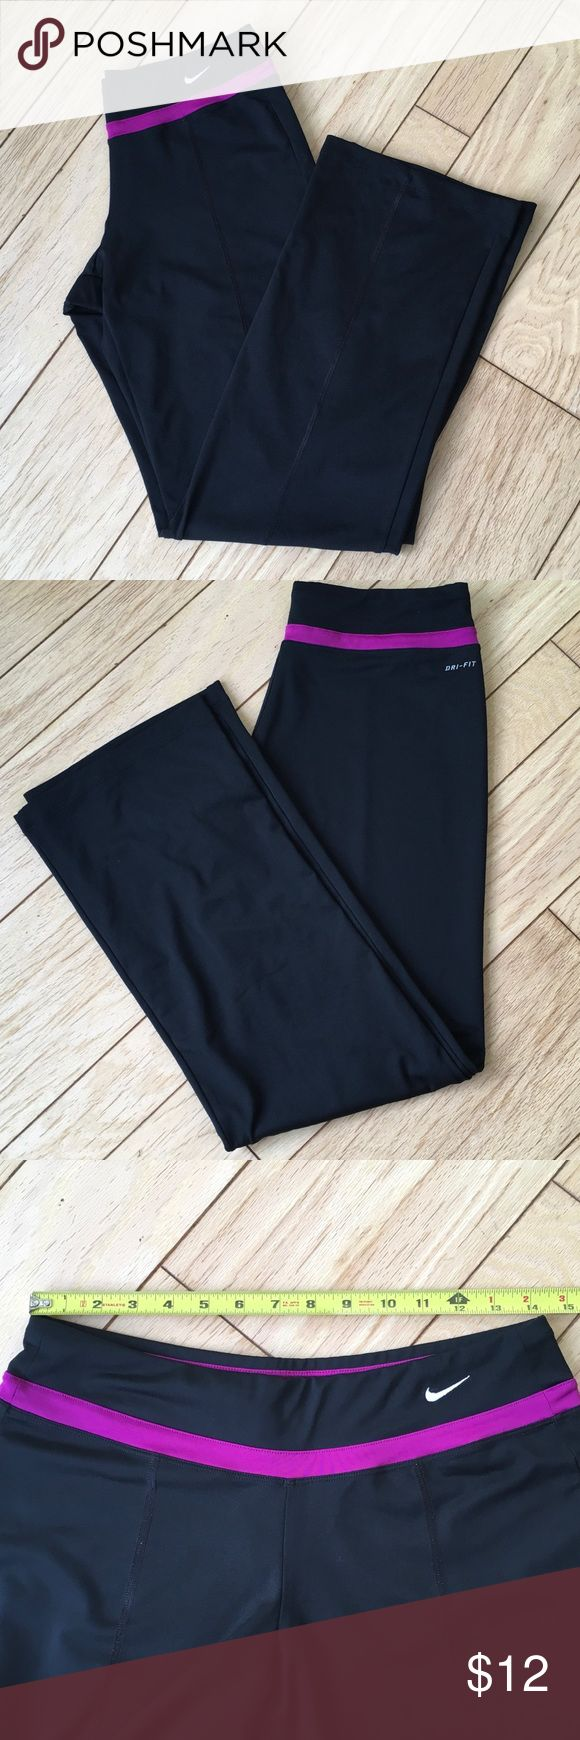 Nike Dri-Fit Running Pants Gently worn but still in good condition. Non smoker home and I give bundle discounts! Nike Pants Track Pants & Joggers